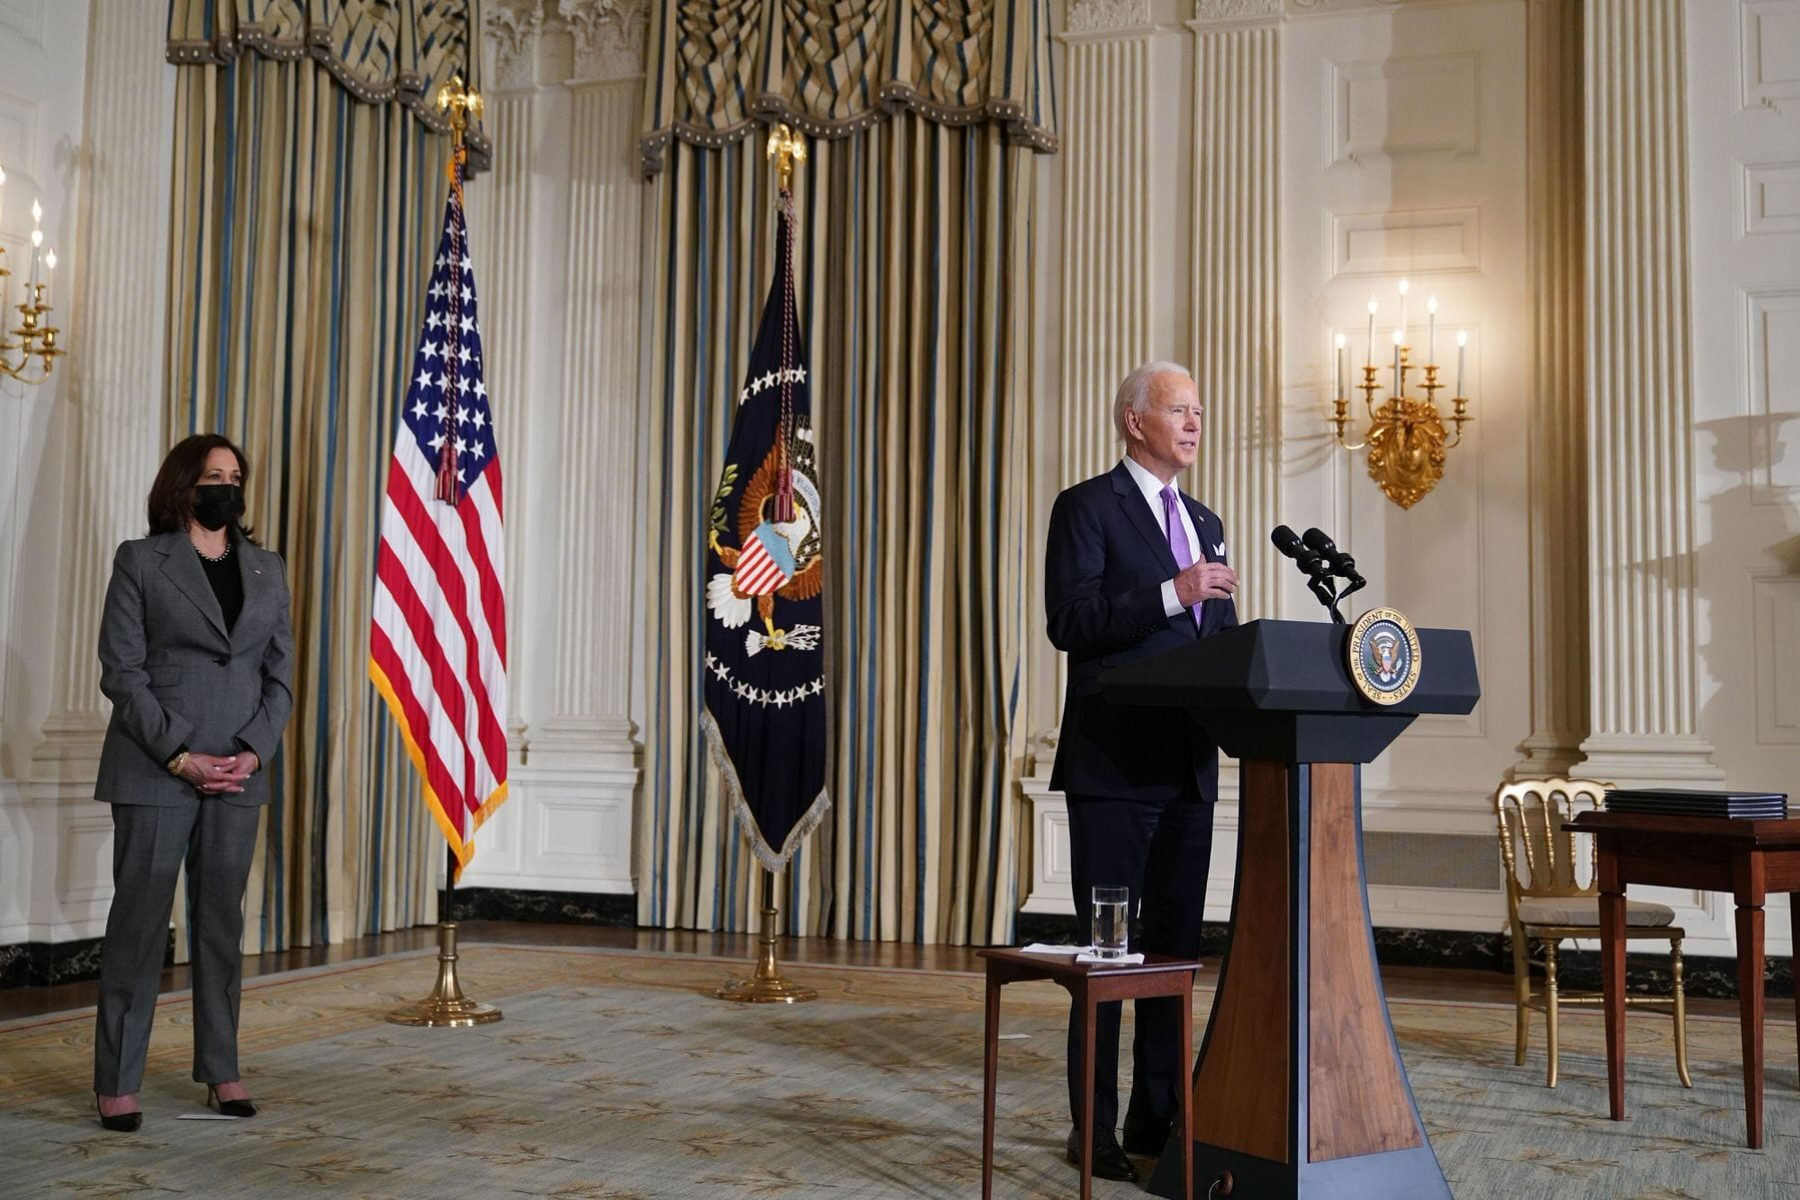 US Vice President Kamala Harris listens as US President Joe Biden speaks on racial equity at a podium in the White House state dining room.